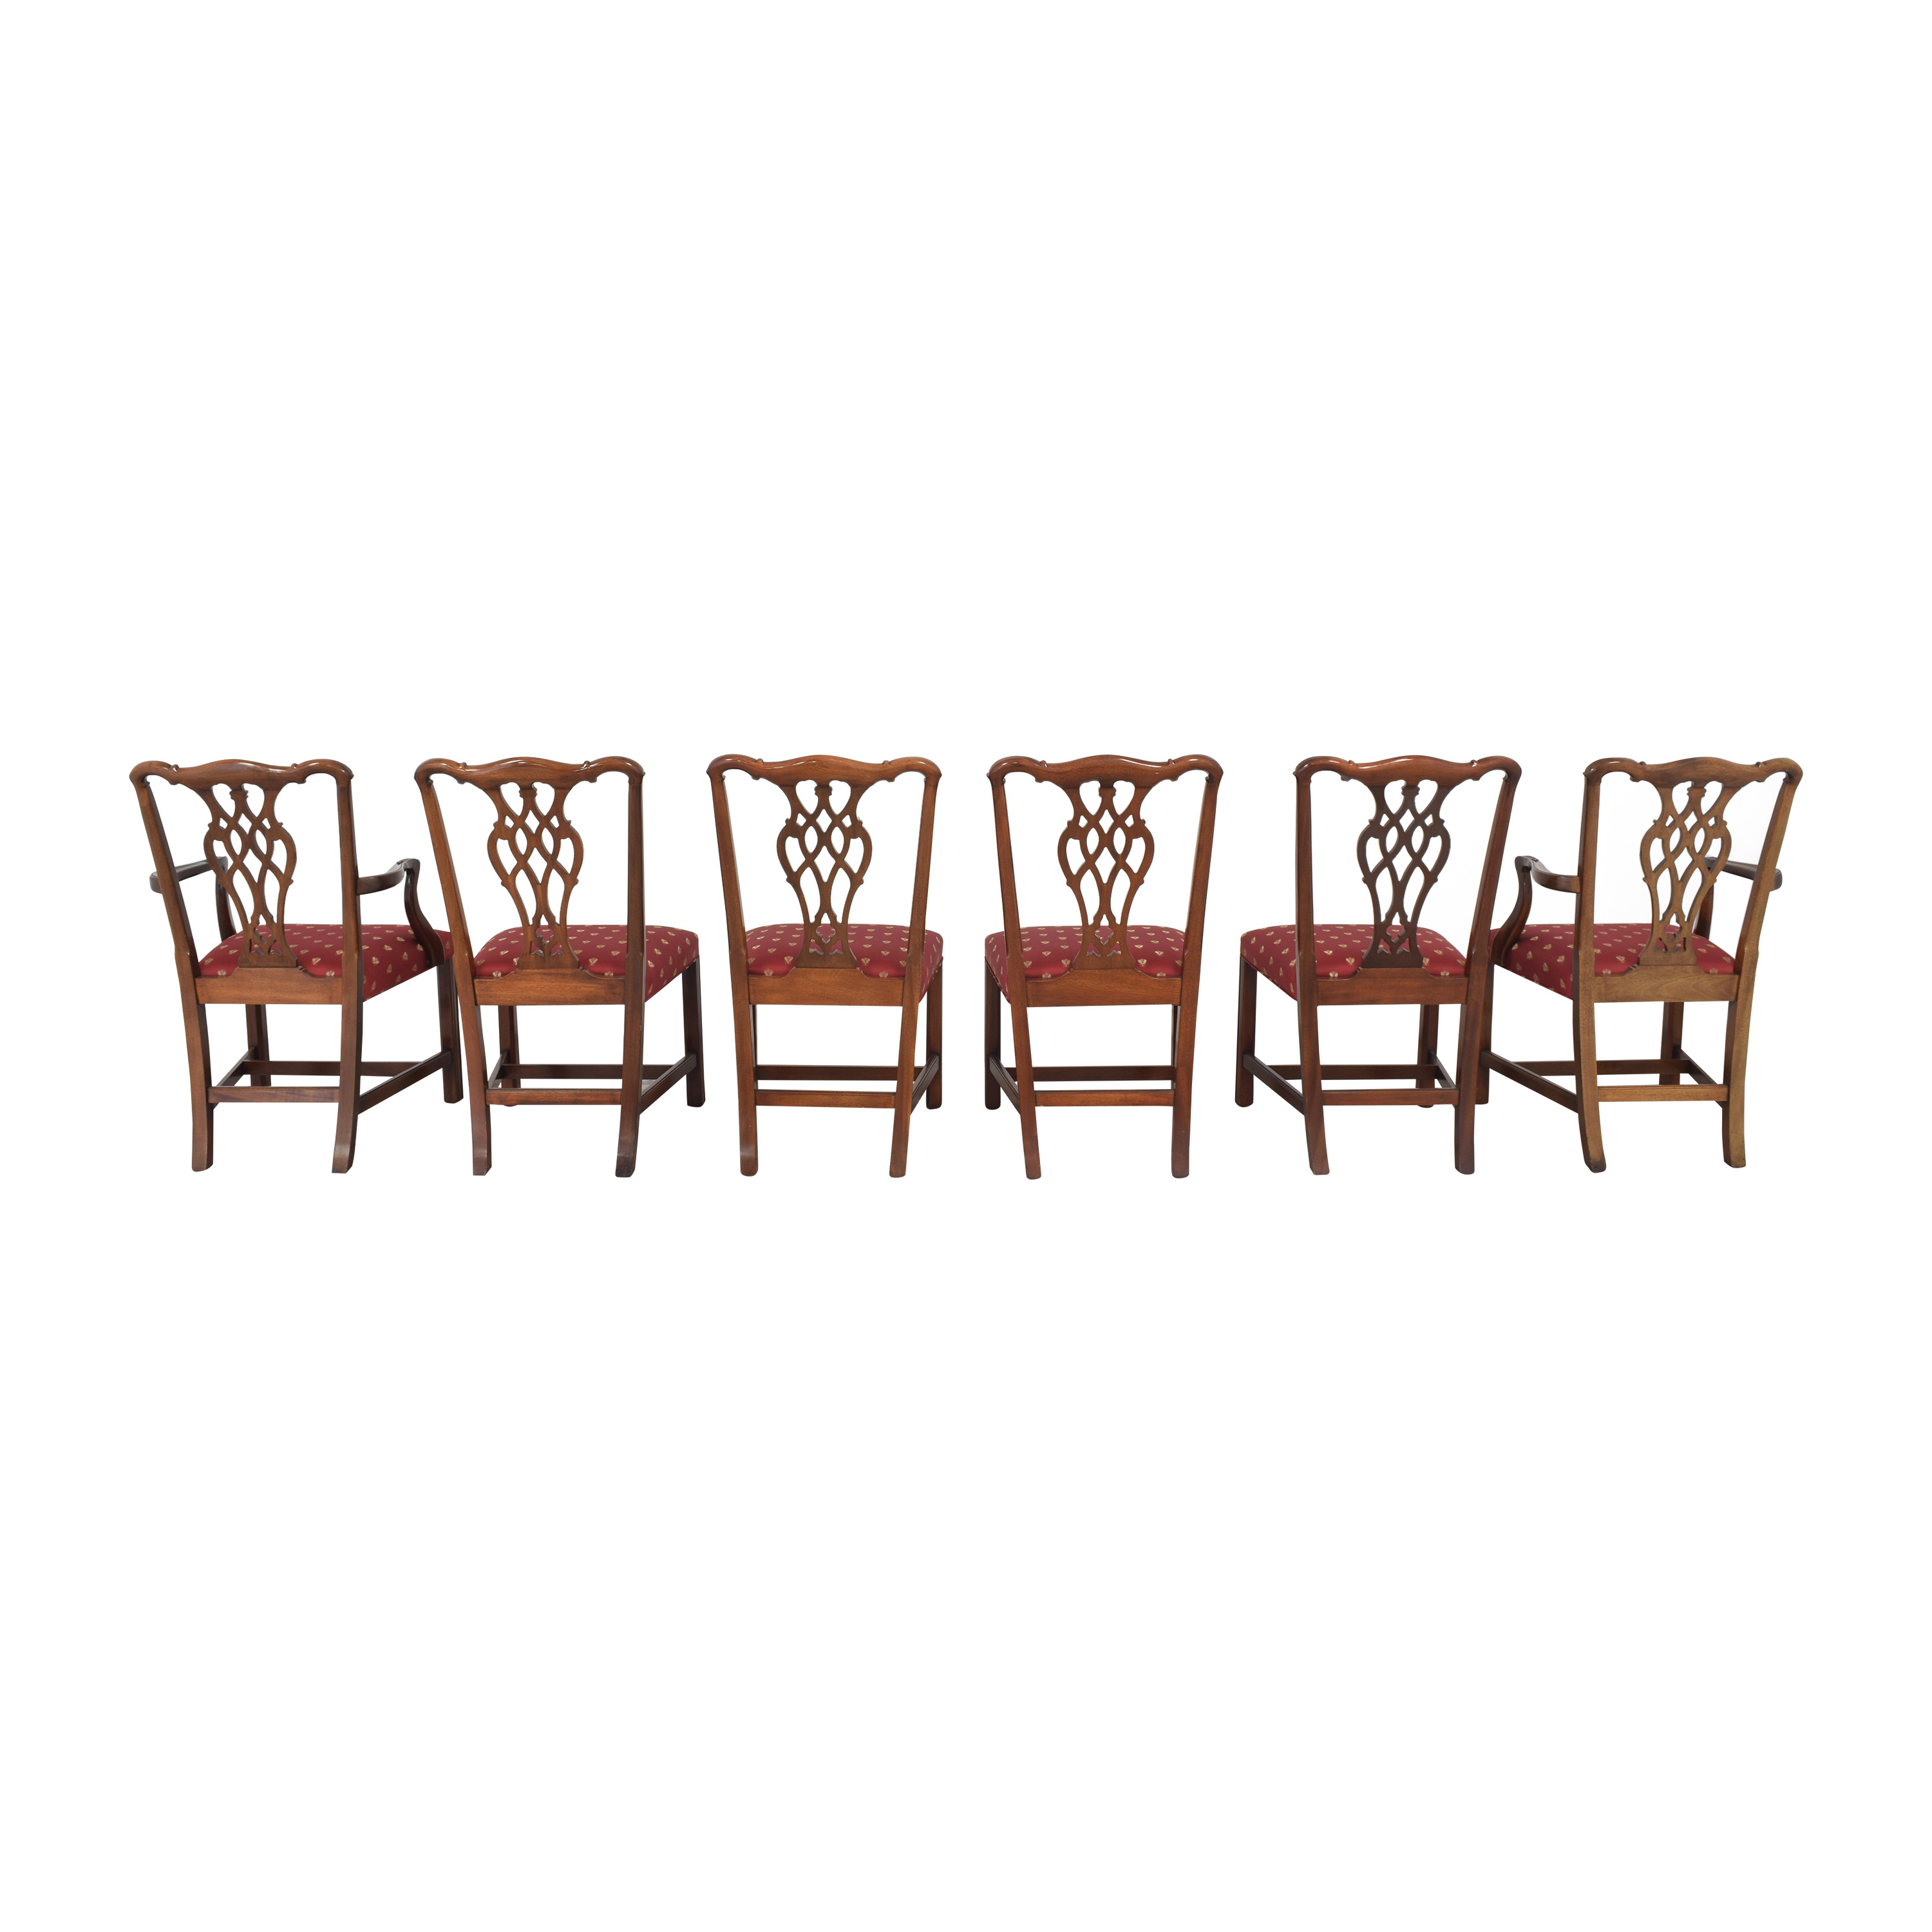 Councill Councill Chippendale Style Dining Chairs nj